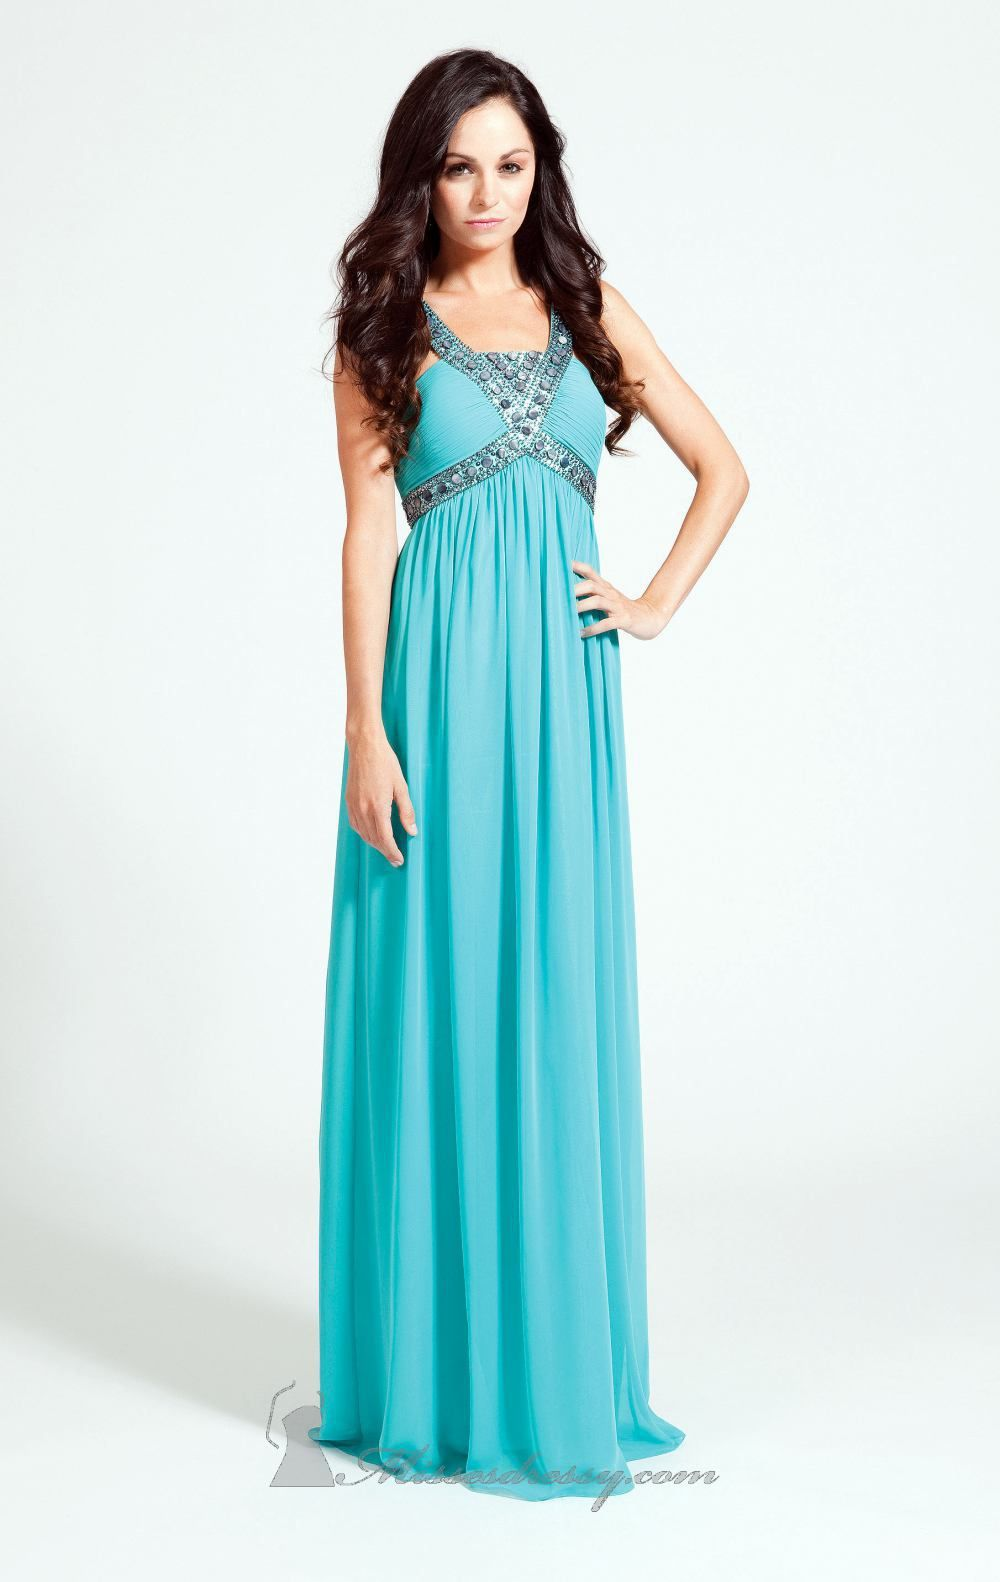 Amazing Tacky Prom Dresses Images - All Wedding Dresses ...